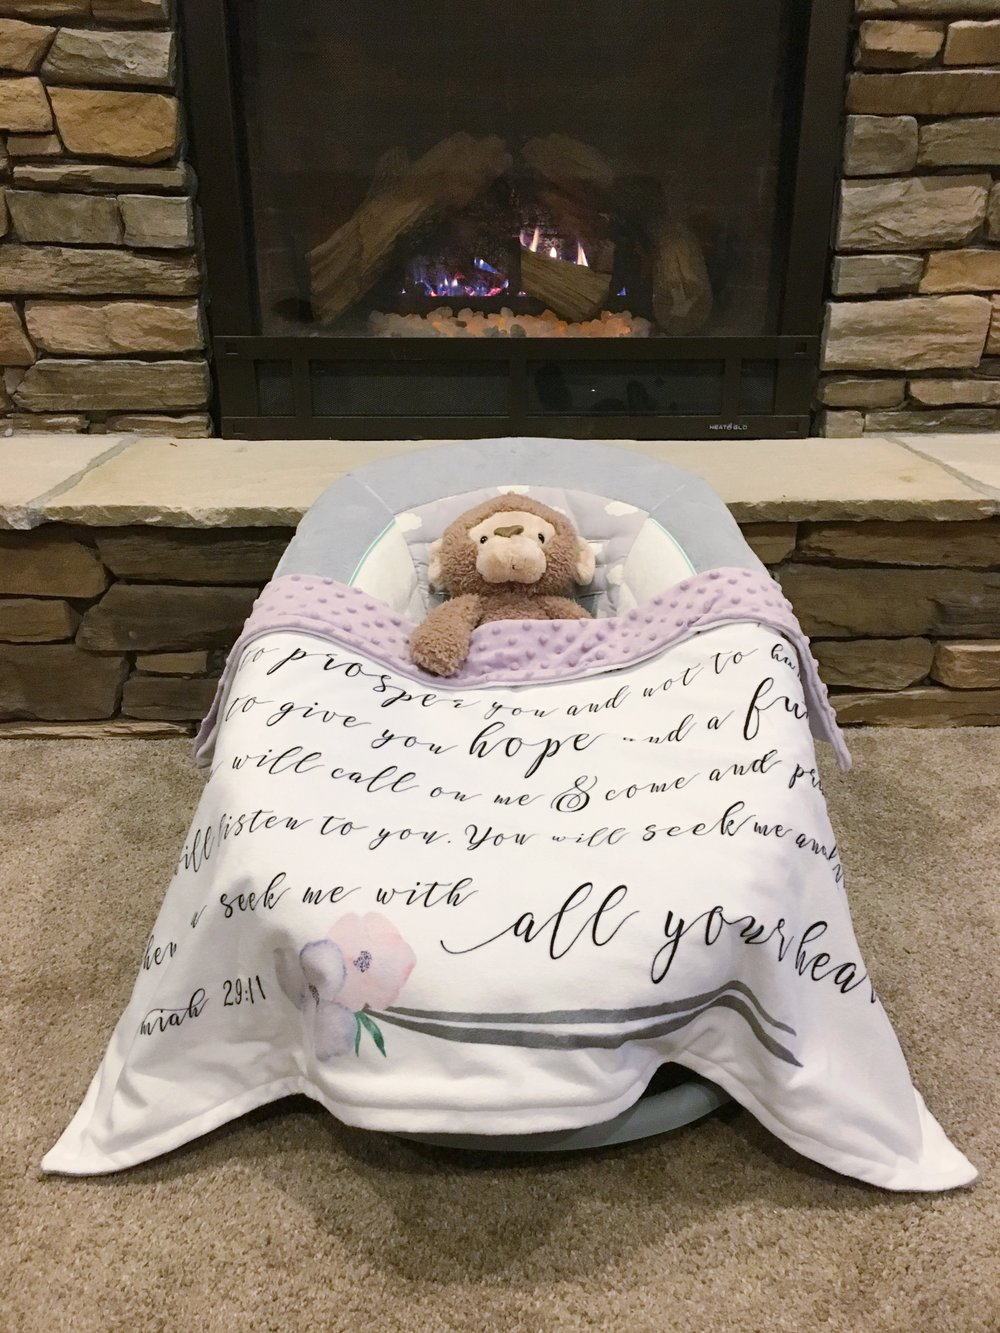 Central PA, Baby Blanket, Hand lettered, JesSmith Designs, Invitations, custom-04-15 06.25.21.jpg